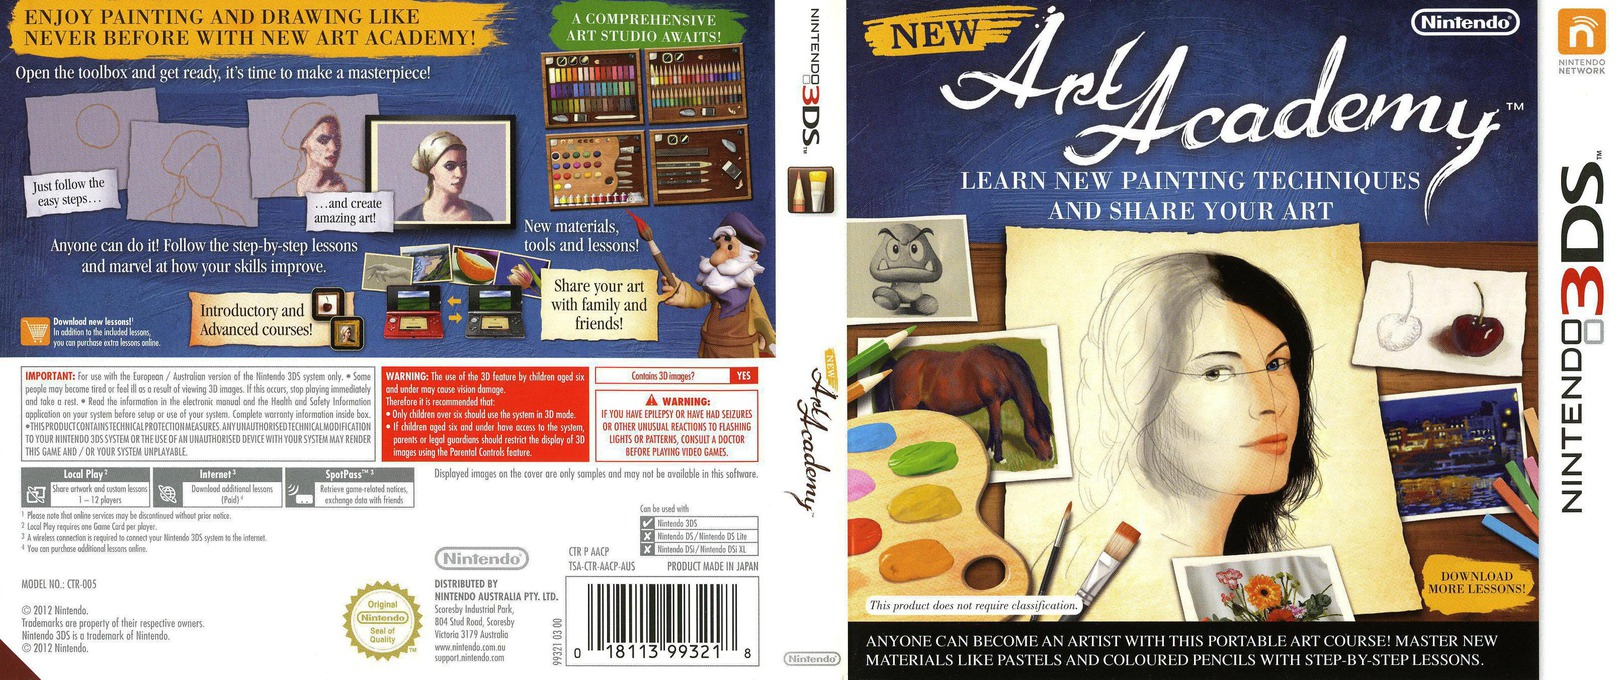 New Art Academy 3DS coverfullHQ (AACP)